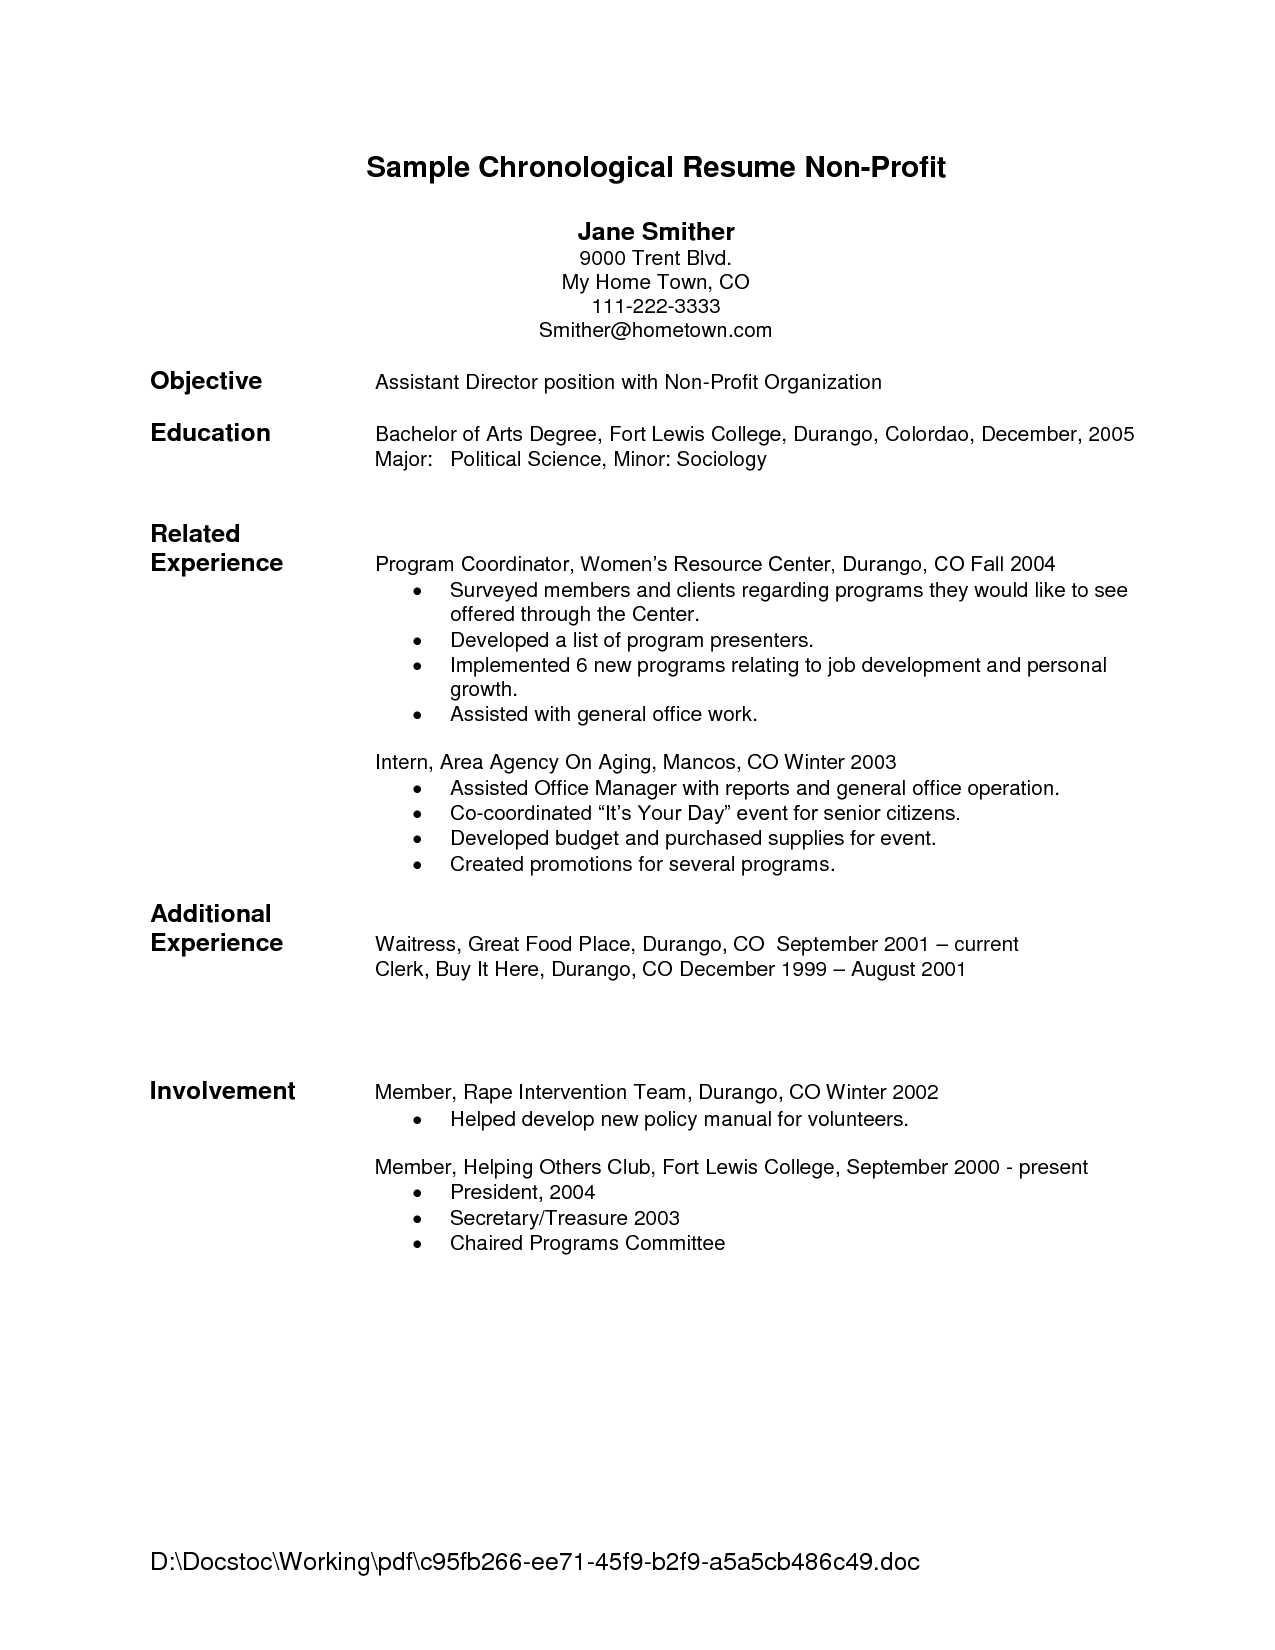 Sample Chronological Resume Chronological Resume Template  Monday Resume  Pinterest